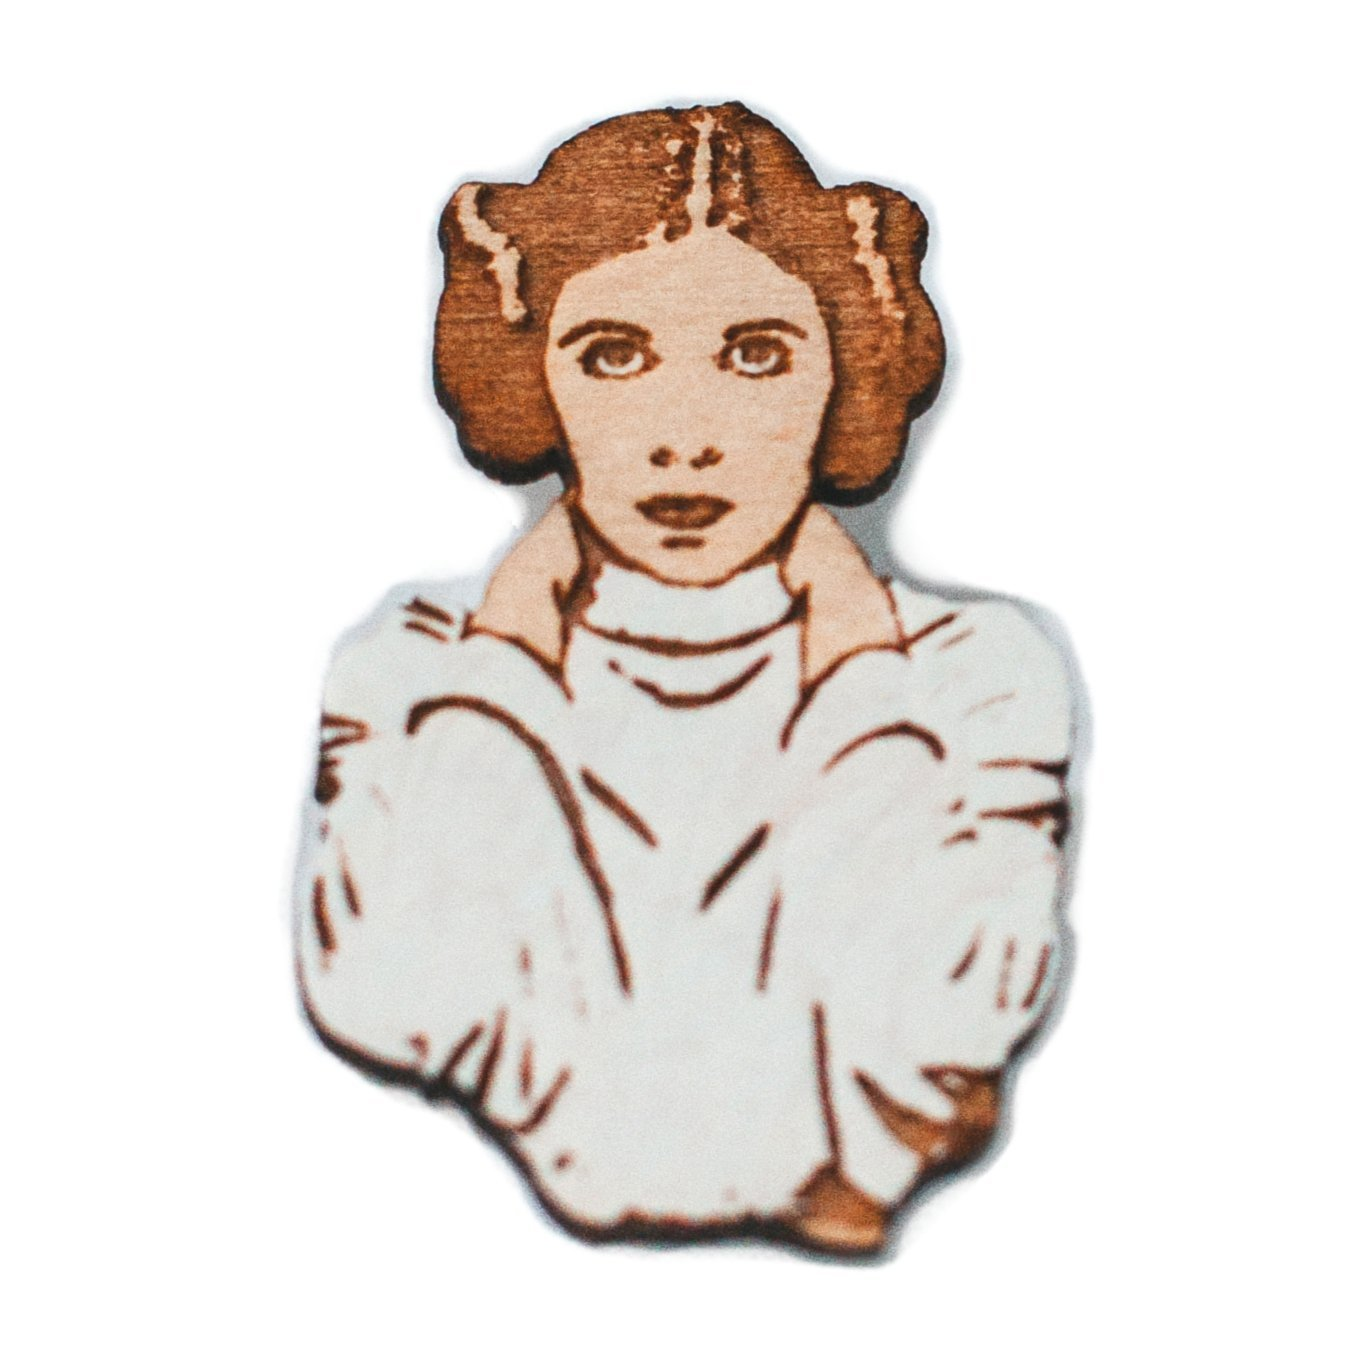 Princess Leia Hand-Painted Star Wars Pin | Carrie Fisher Rebel Alliance Brooch [1541010870-304354] - $6.24